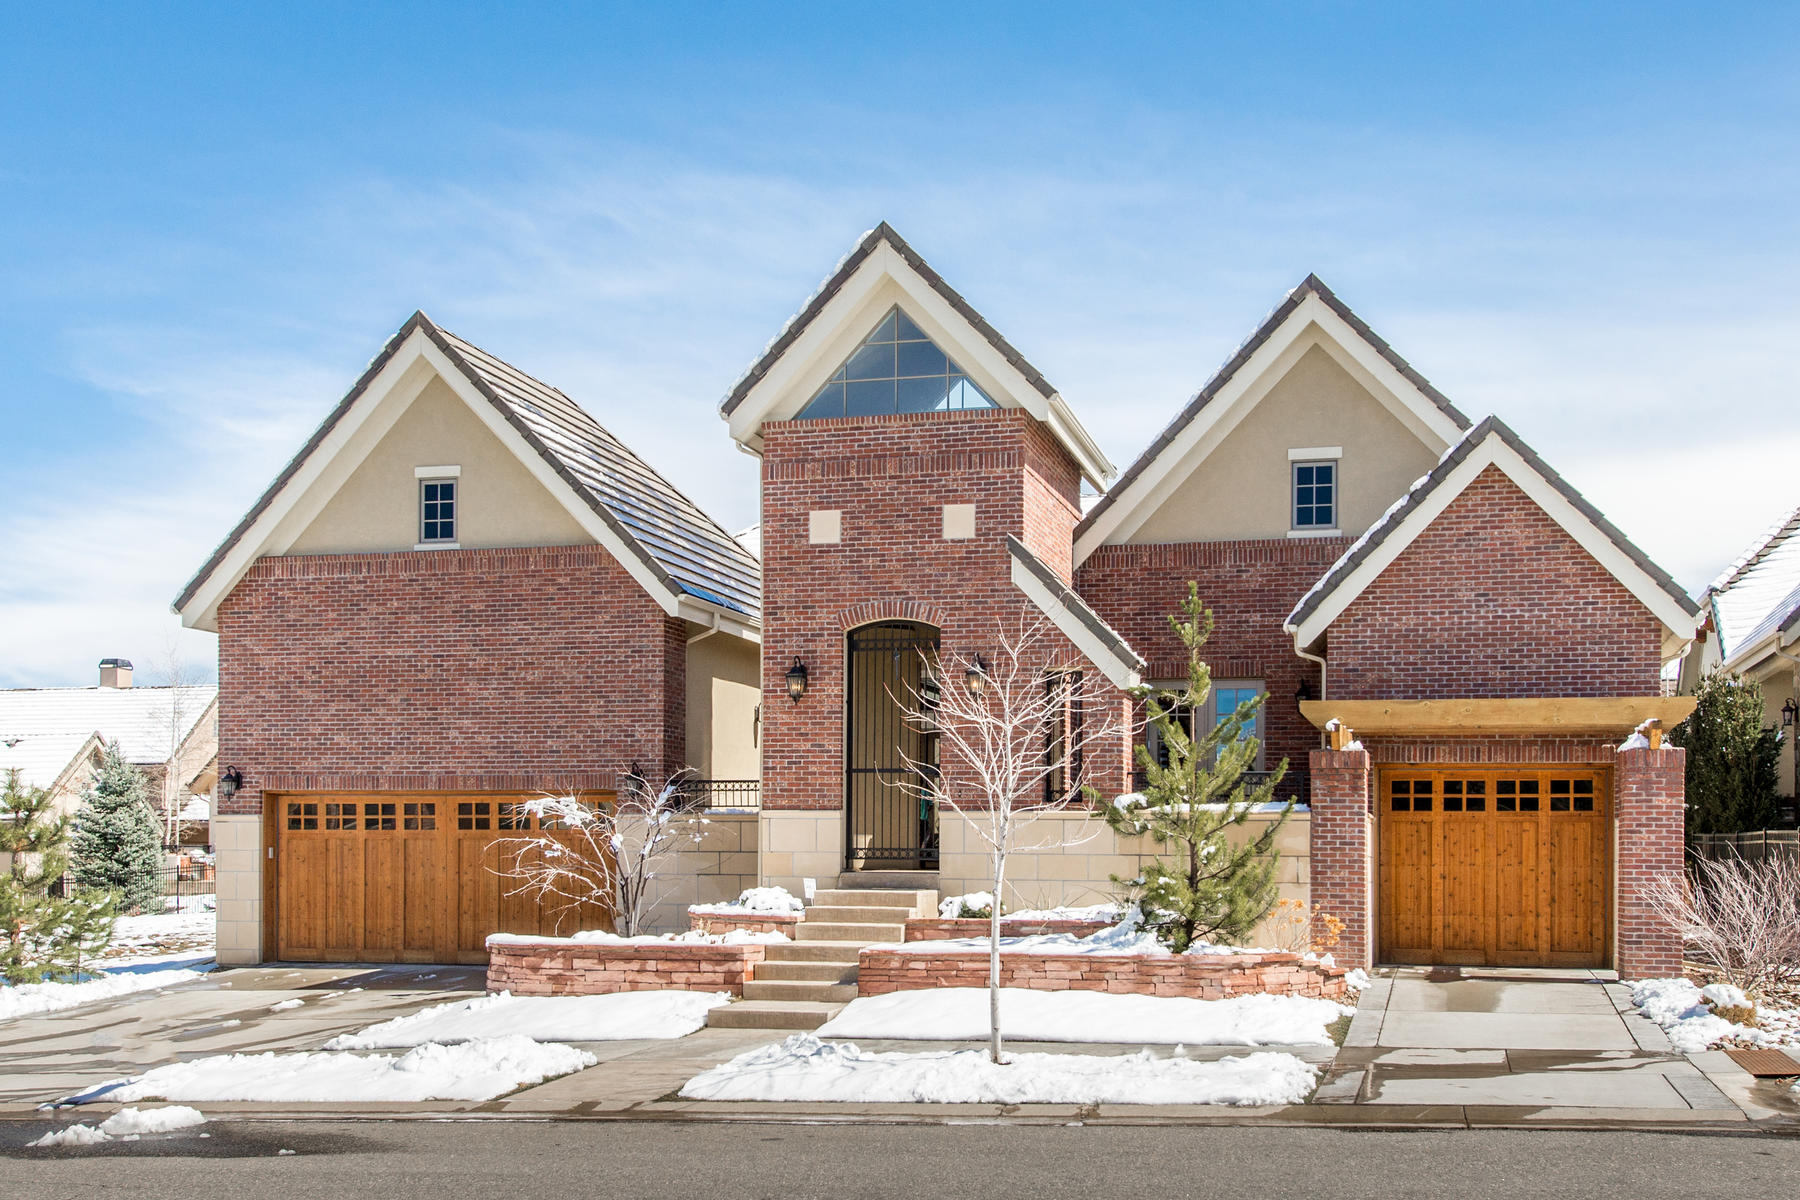 Single Family Home for Active at Exquisitely appointed ranch (morellos) style home with every upgrade imaginable. 43 Sommerset Cir Greenwood Village, Colorado 80111 United States